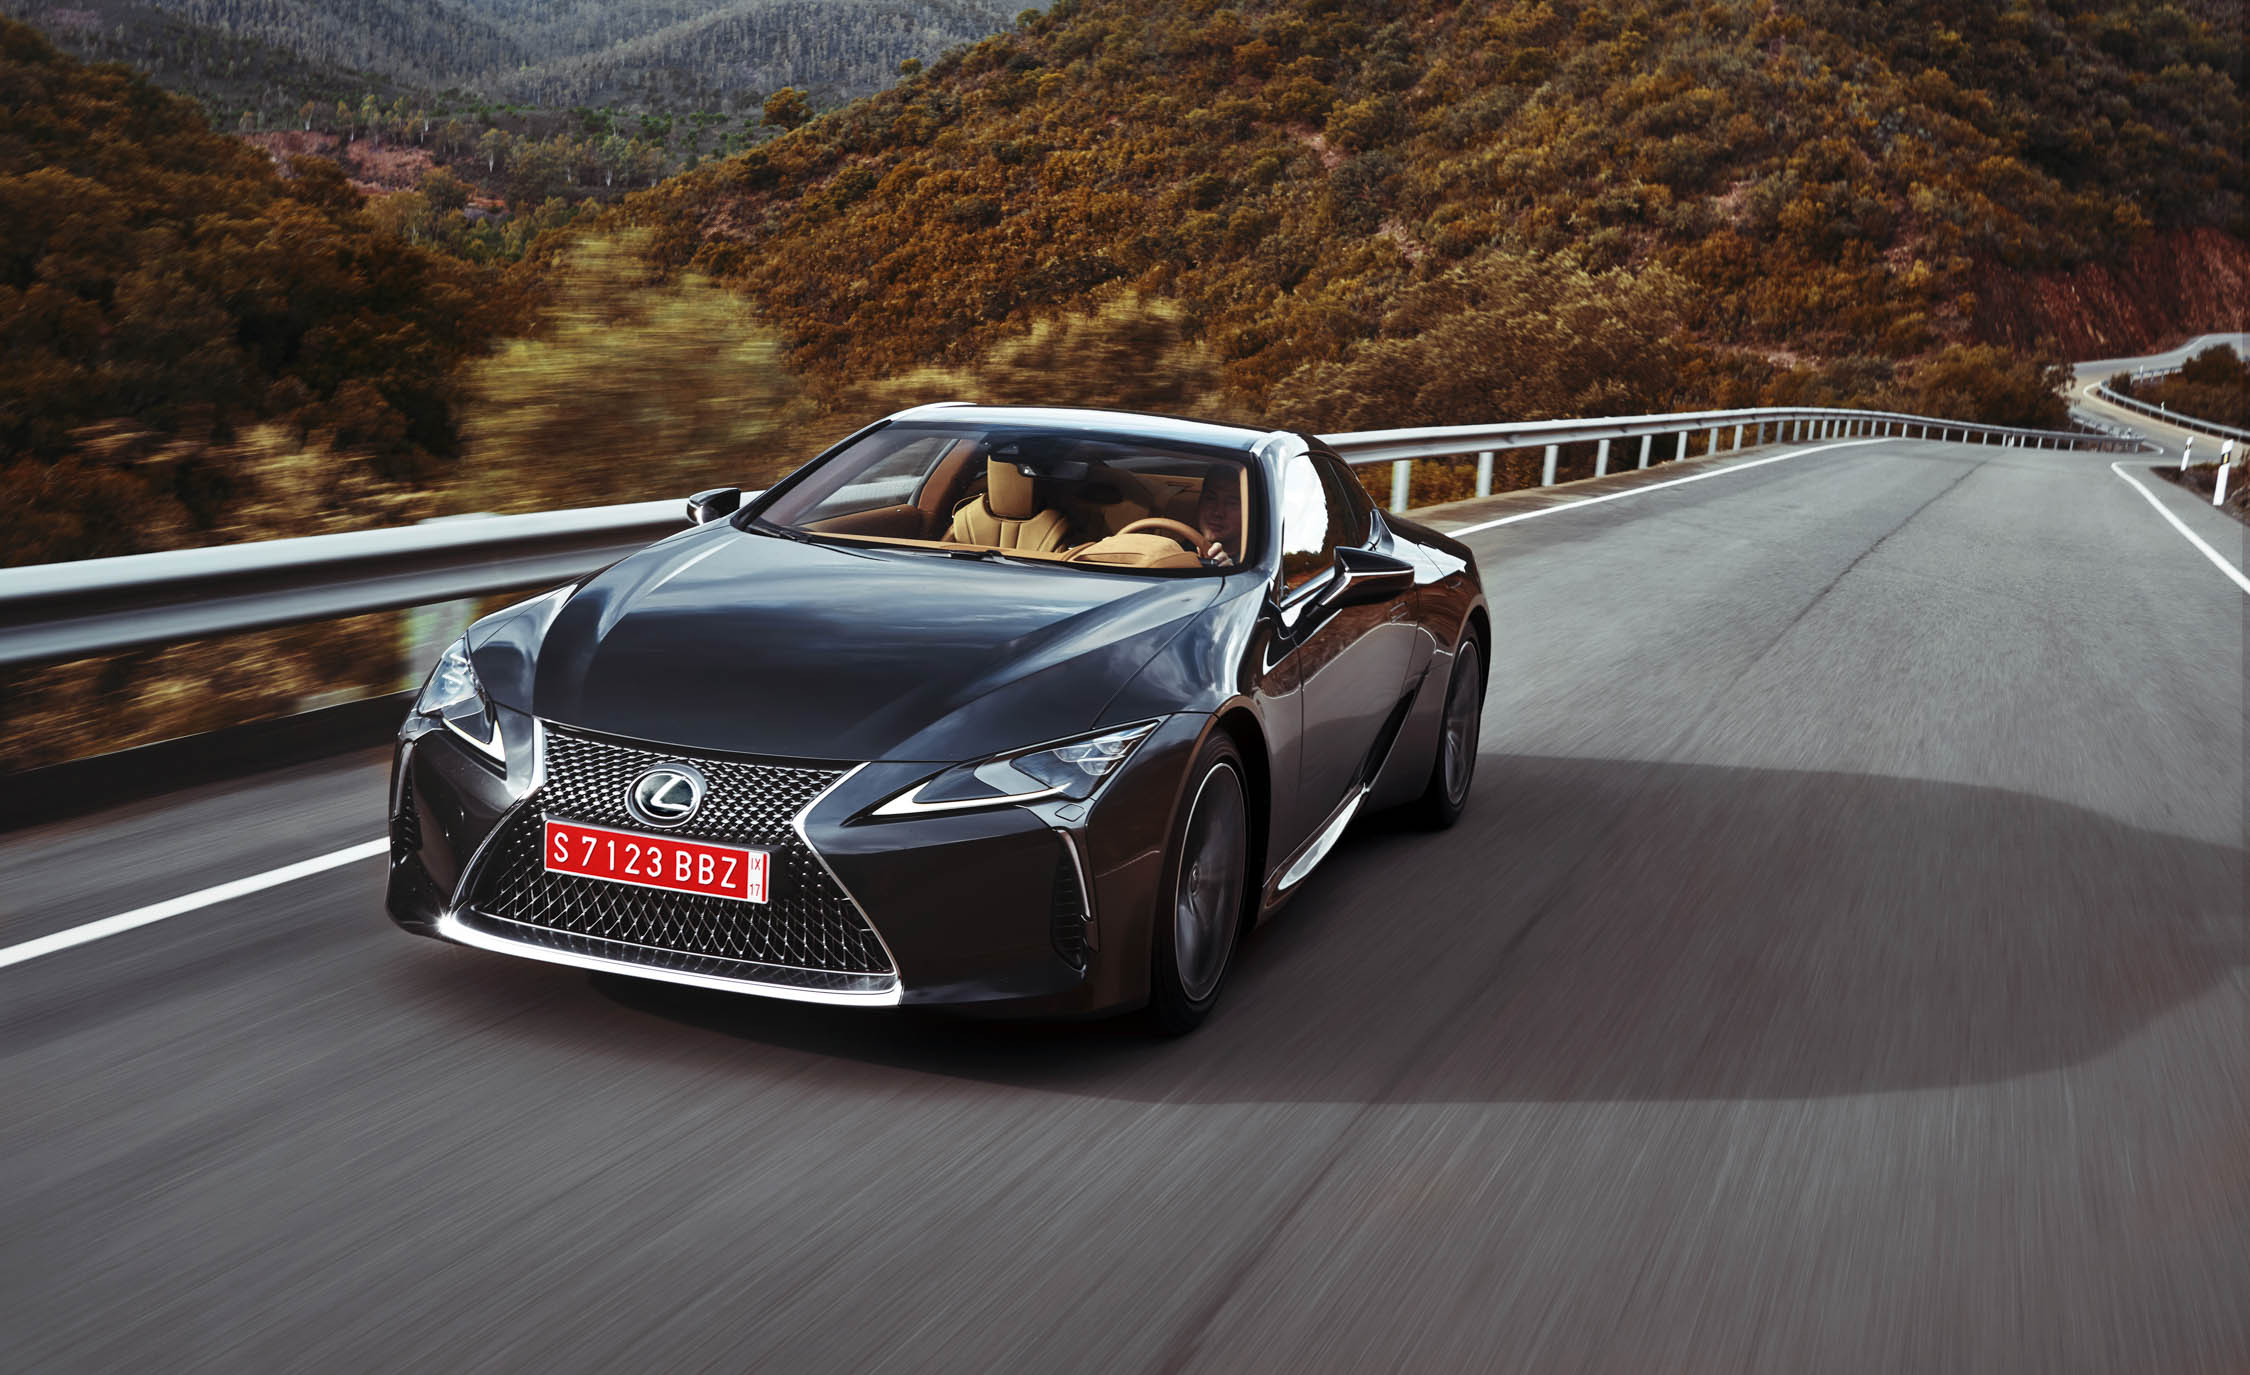 2018 Lexus Lc 500 Black Test Drive (Photo 9 of 84)